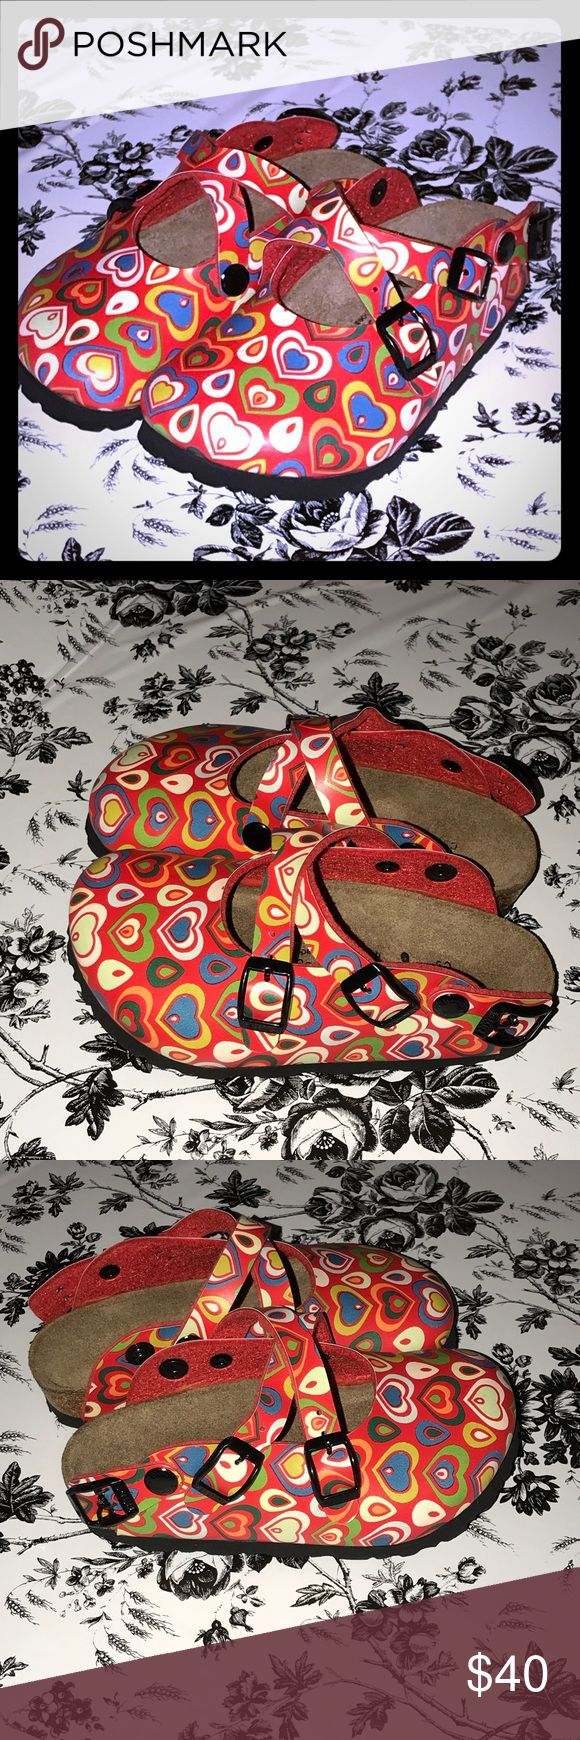 Kids Birki's with hearts in a red color Size 27 A cute new pair of kids Birki's size 27. The only flaw is they are missing the back strip, see photos. Birkenstock Shoes Sandals & Flip Flops